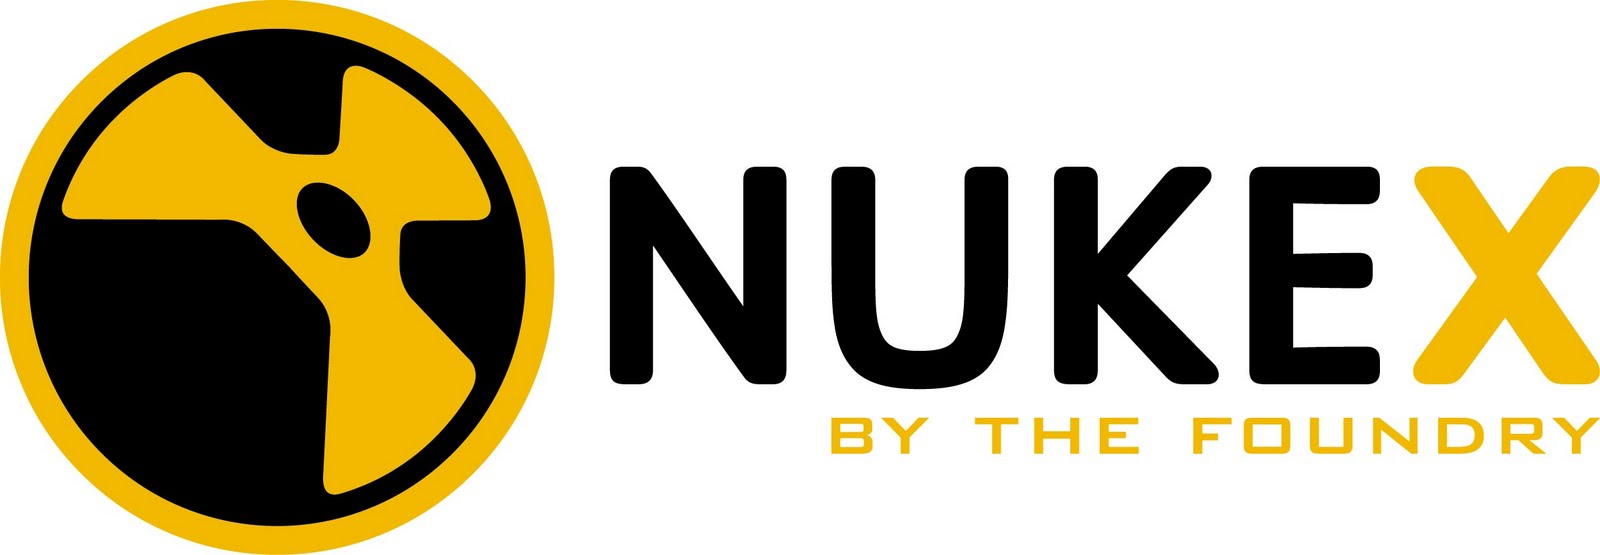 The Foundry NUKEX Download for free